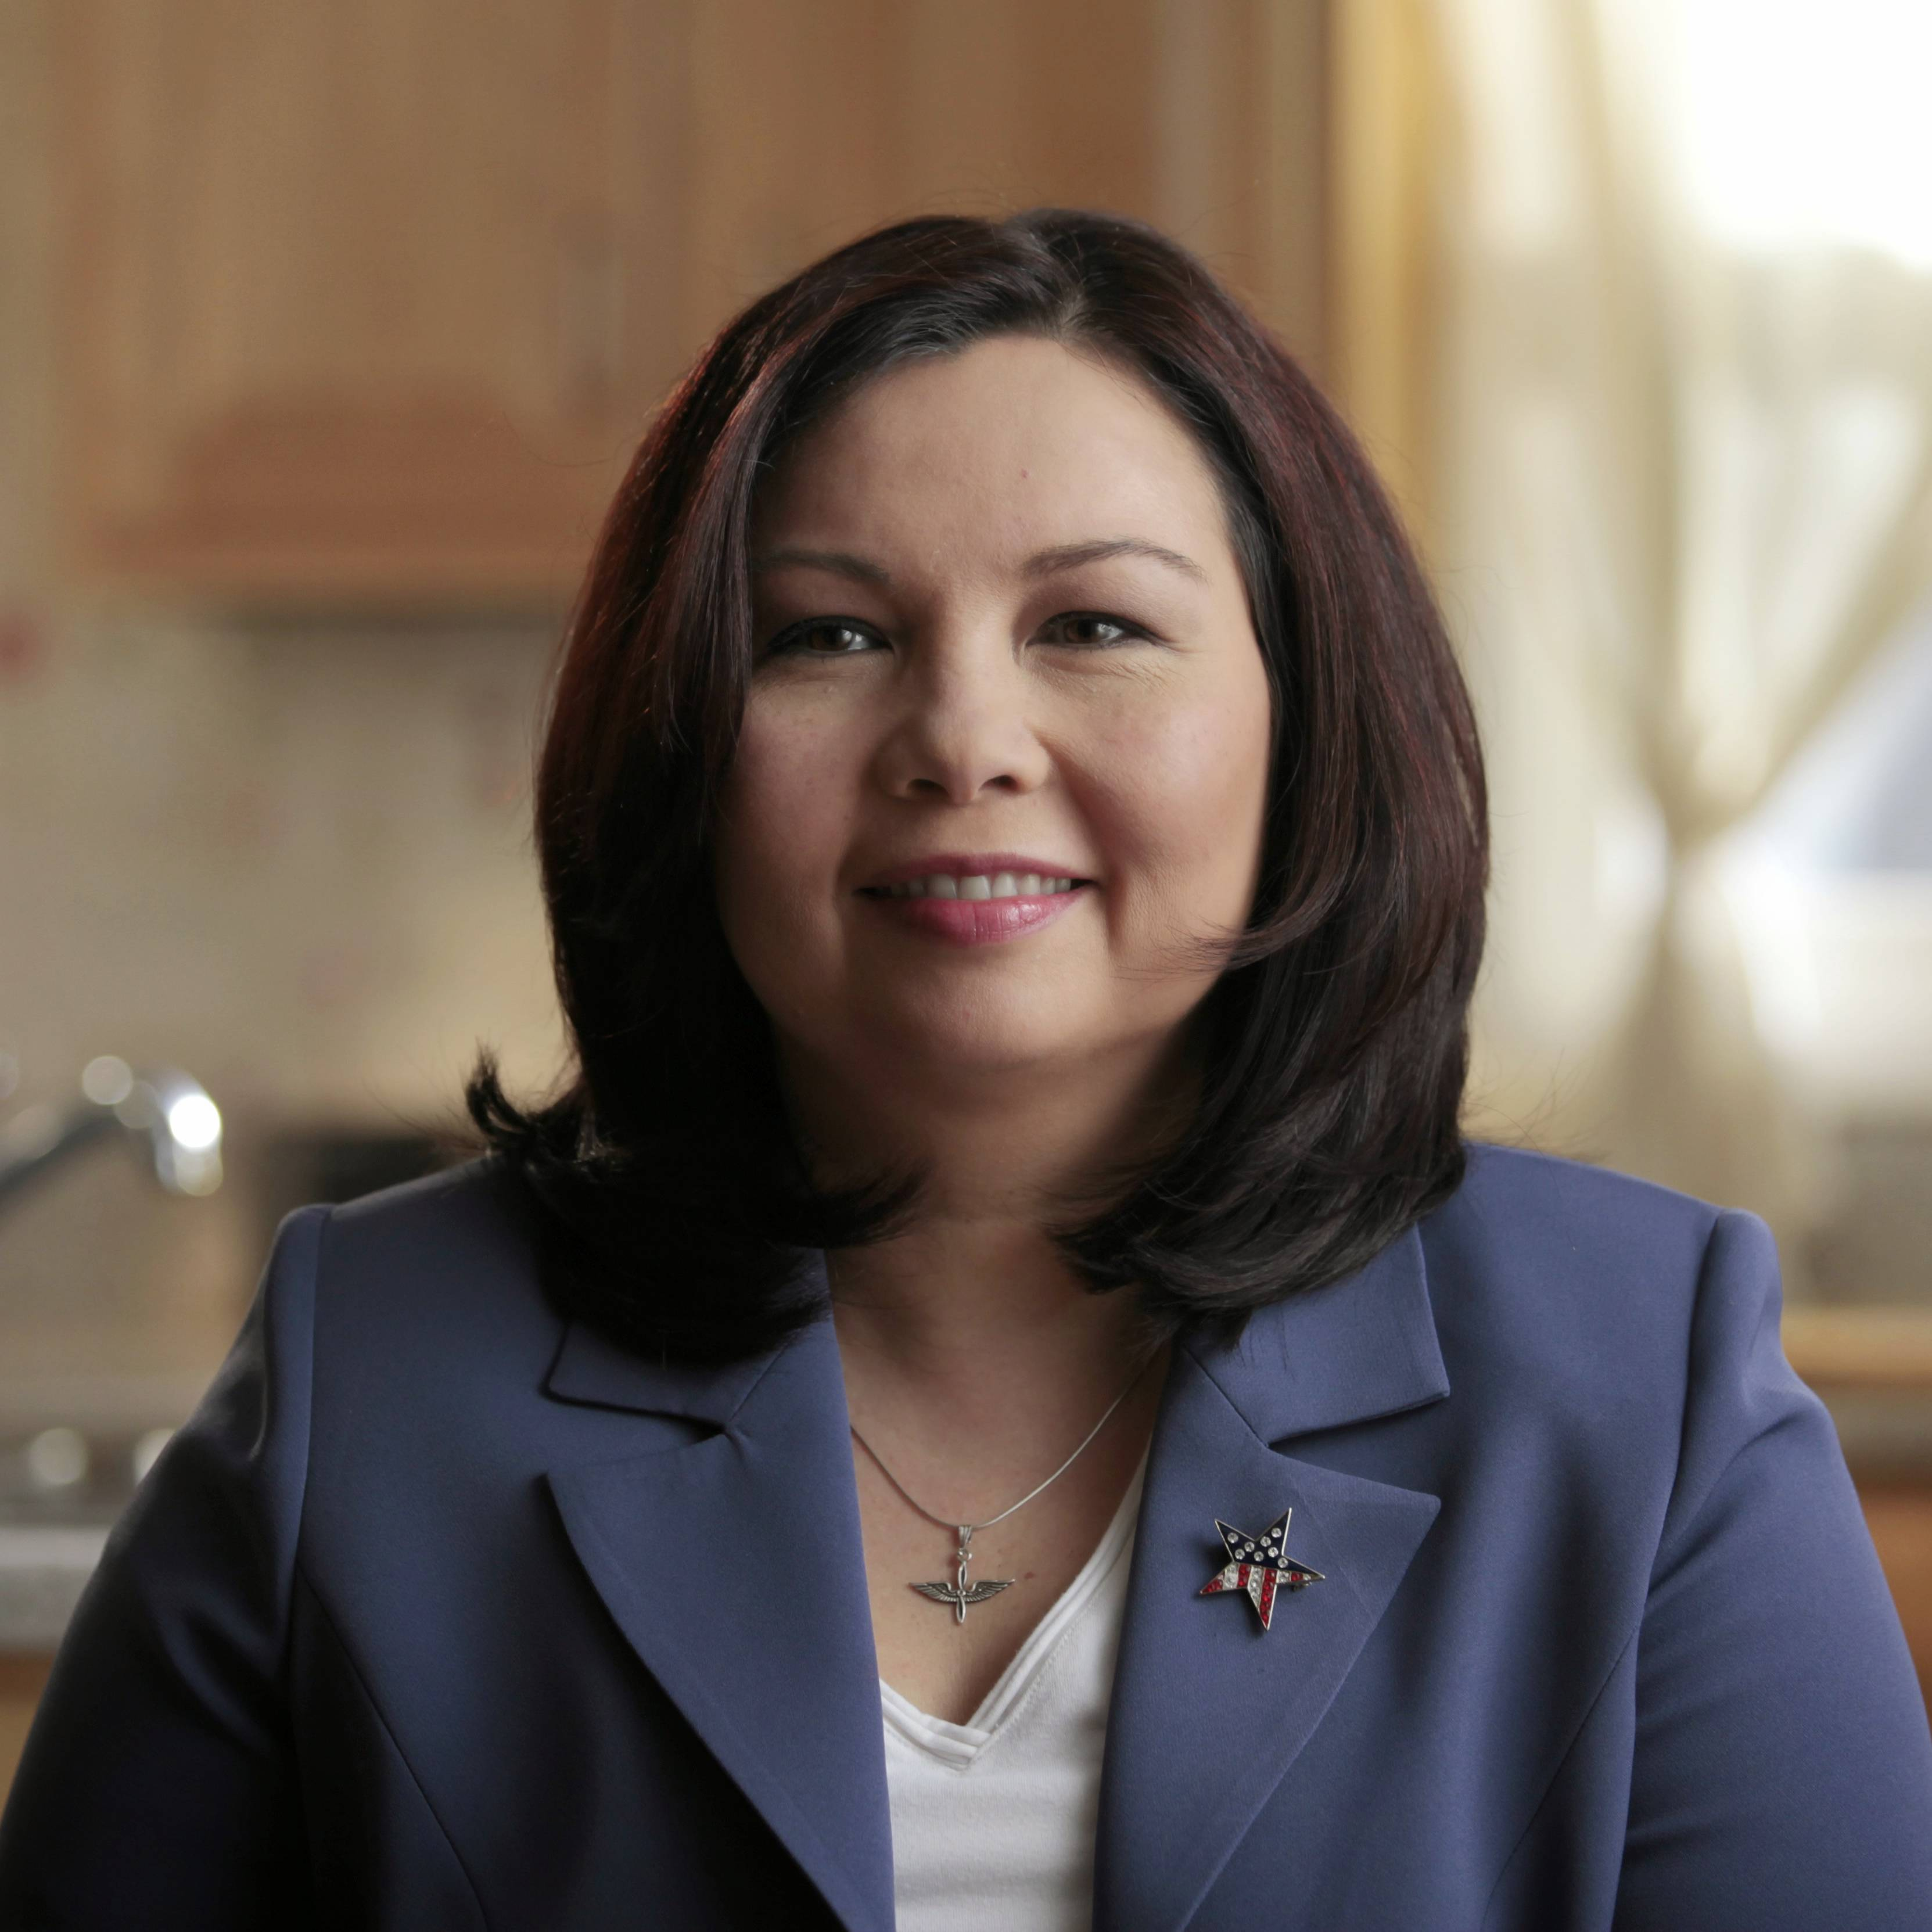 Lester: New sticking points in Duckworth workplace suit